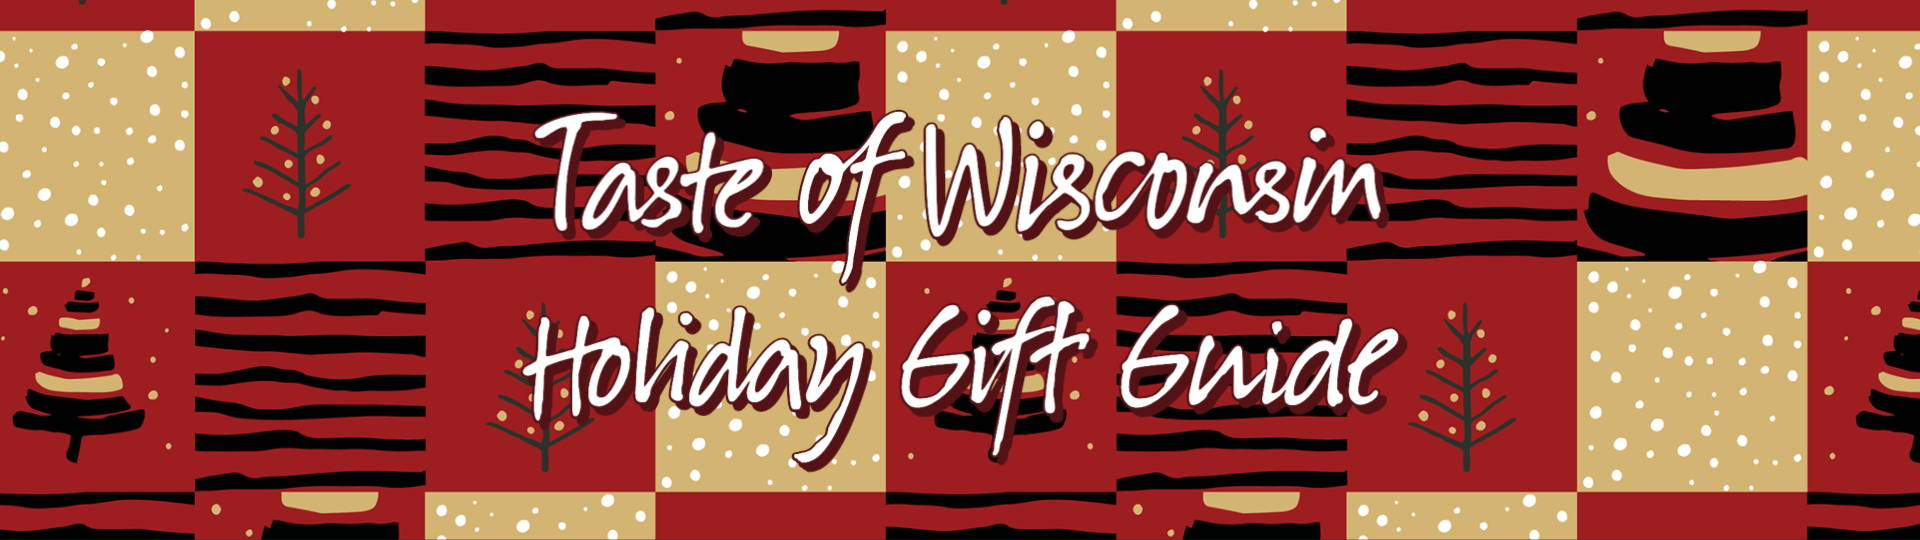 Welcome to the Taste of Wisconsin Winter Holiday Gift Guide